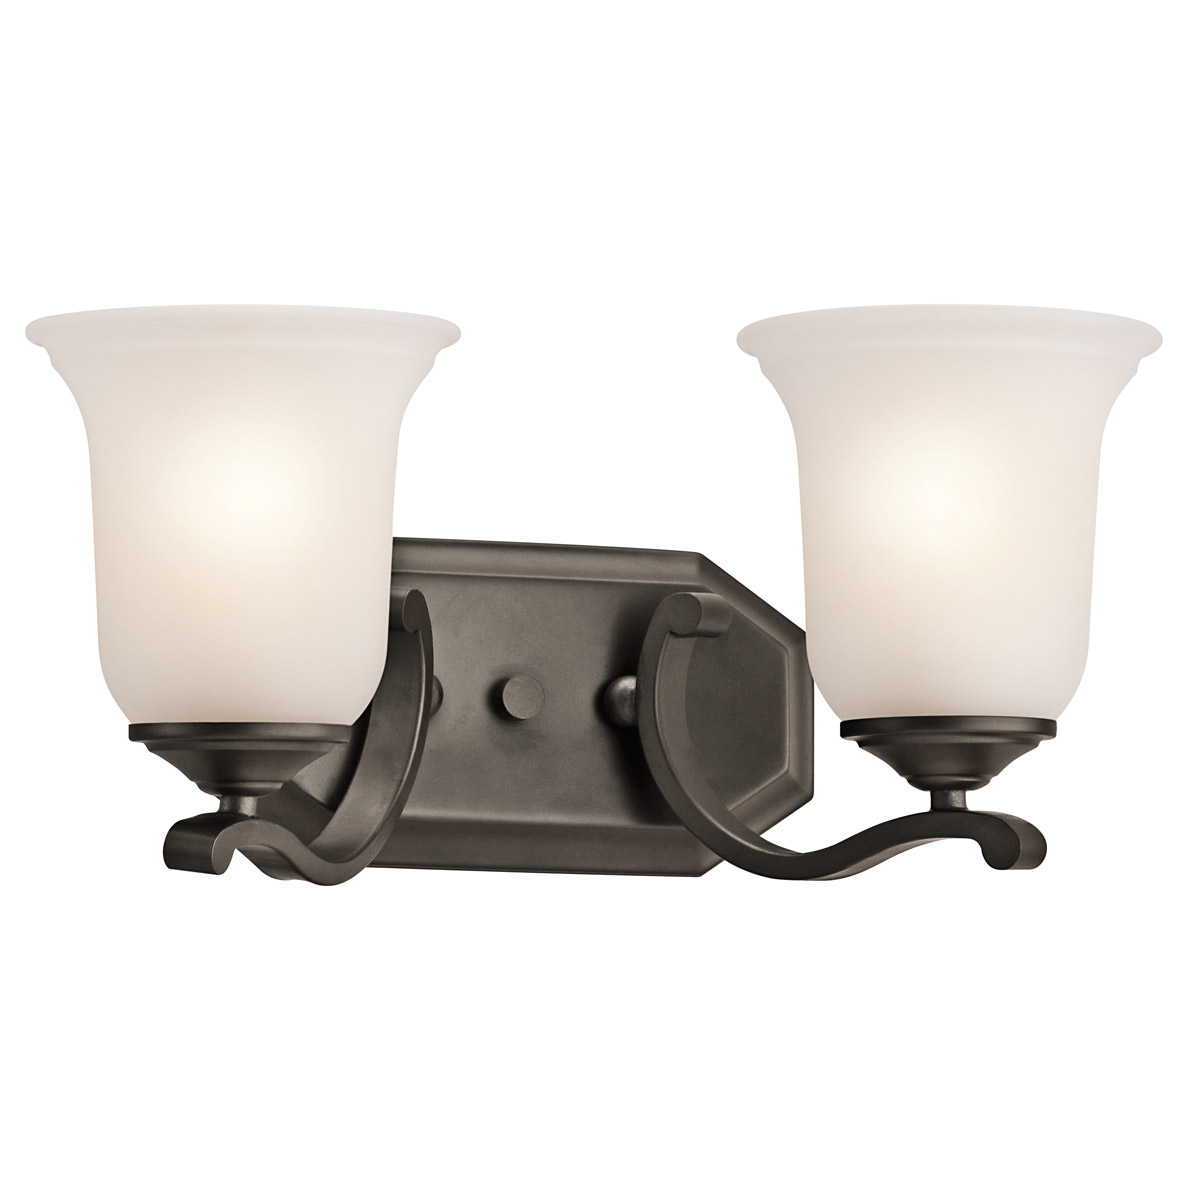 Kichler 45402OZ Wellington Square Bathroom Vanity Light